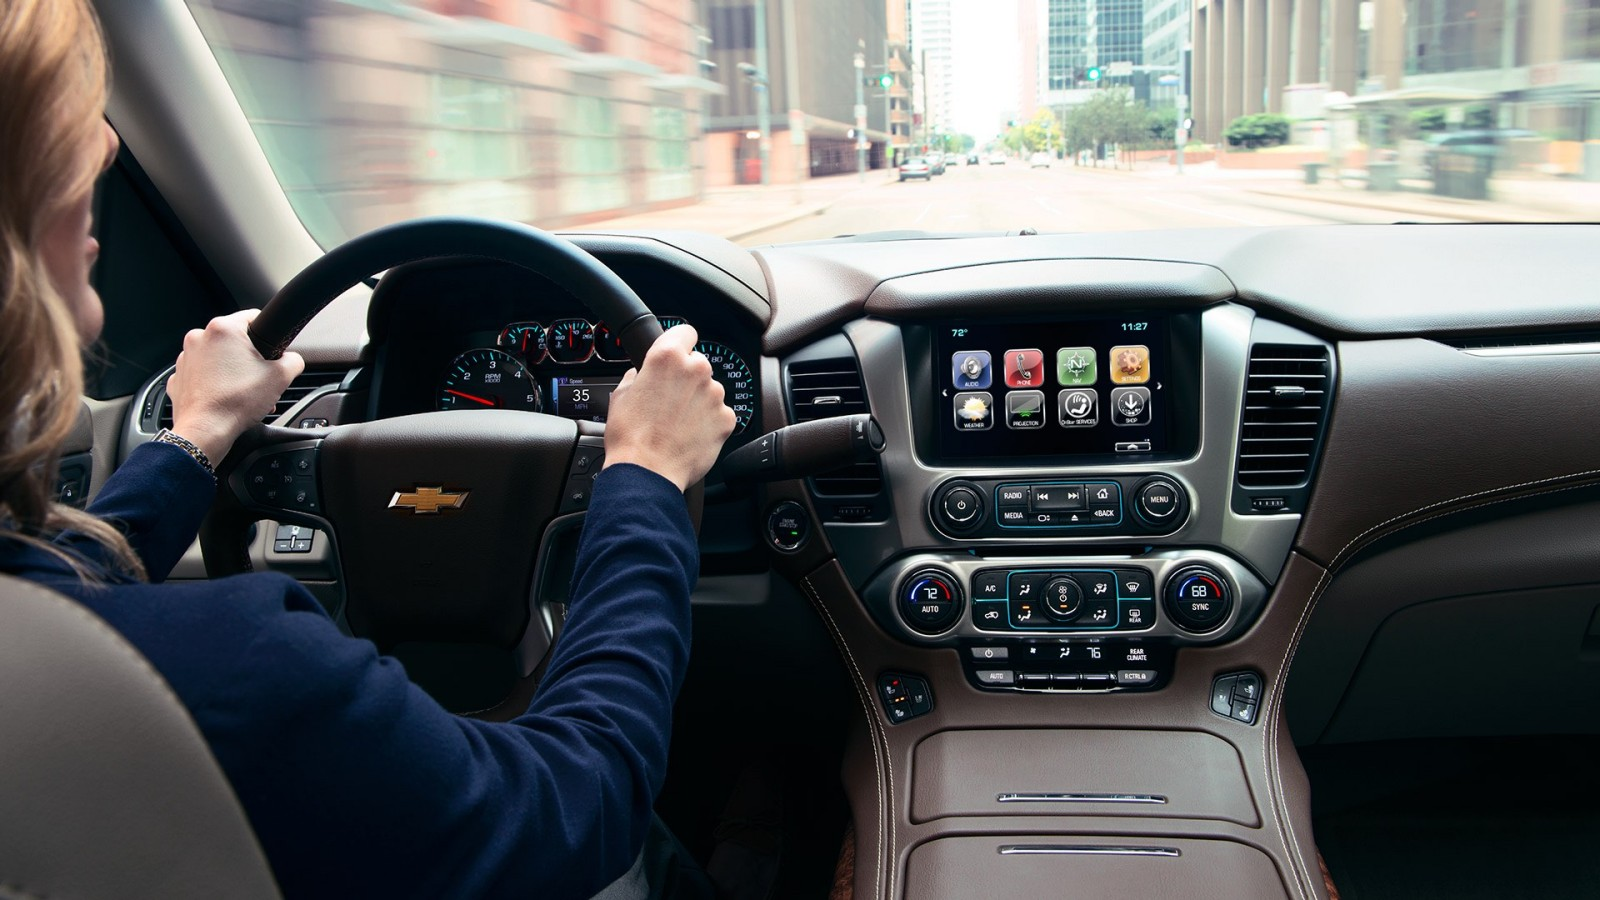 8-inch Color Touchscreen in the Chevy Suburban